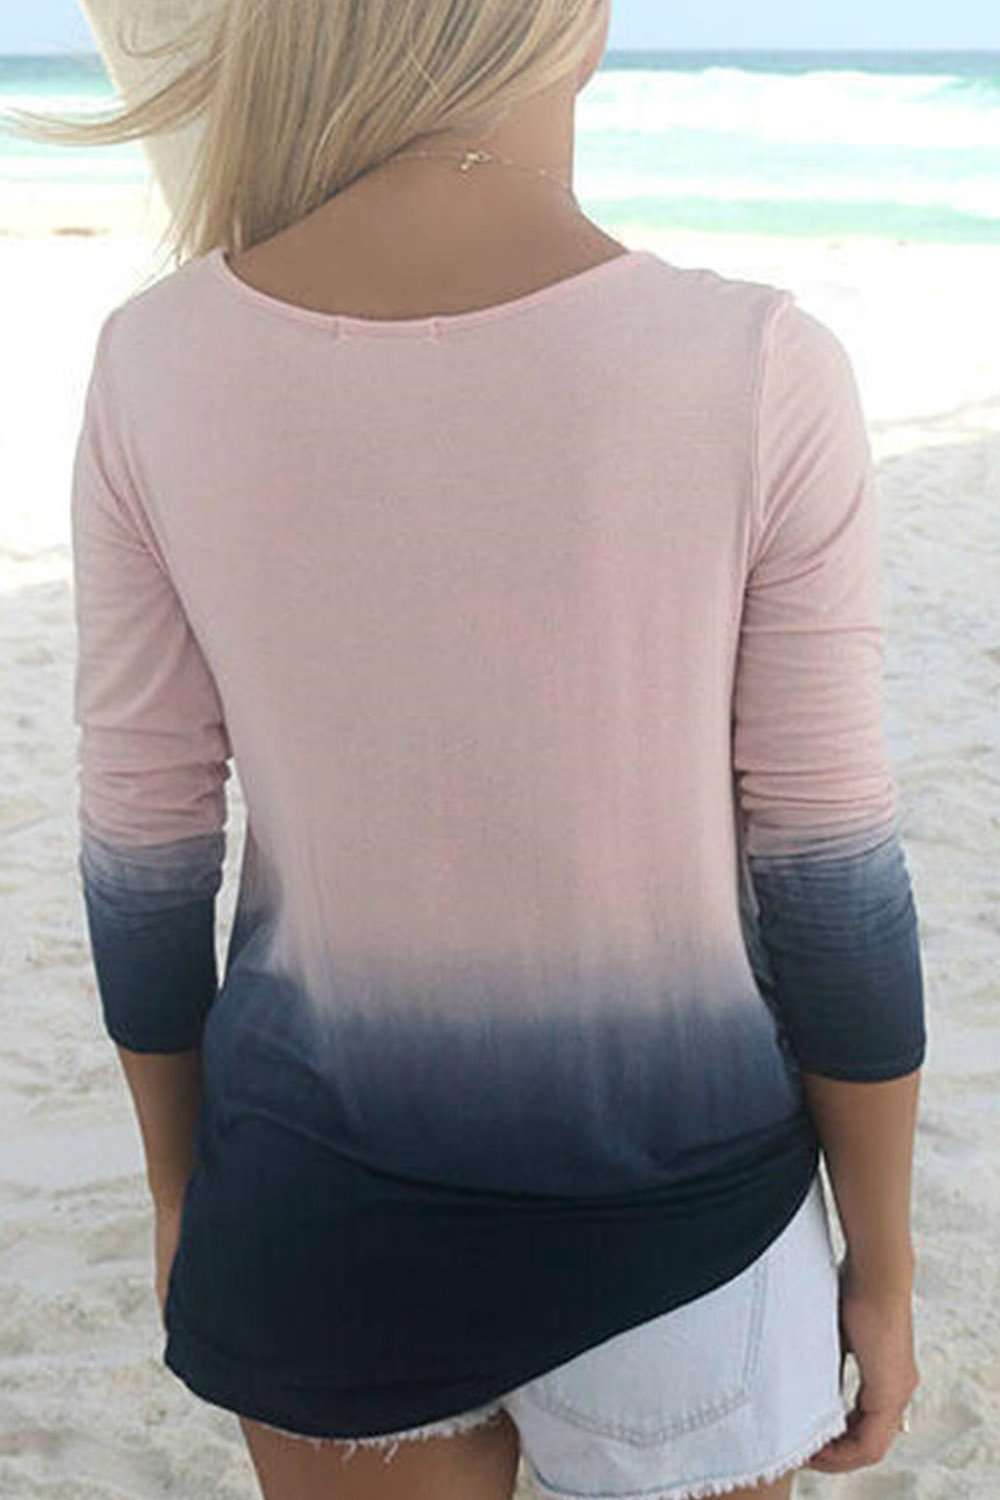 Women's Casual Tie Dye Long Sleeve Tunic T-shirt Top Tee: Amazon.co.uk:  Clothing